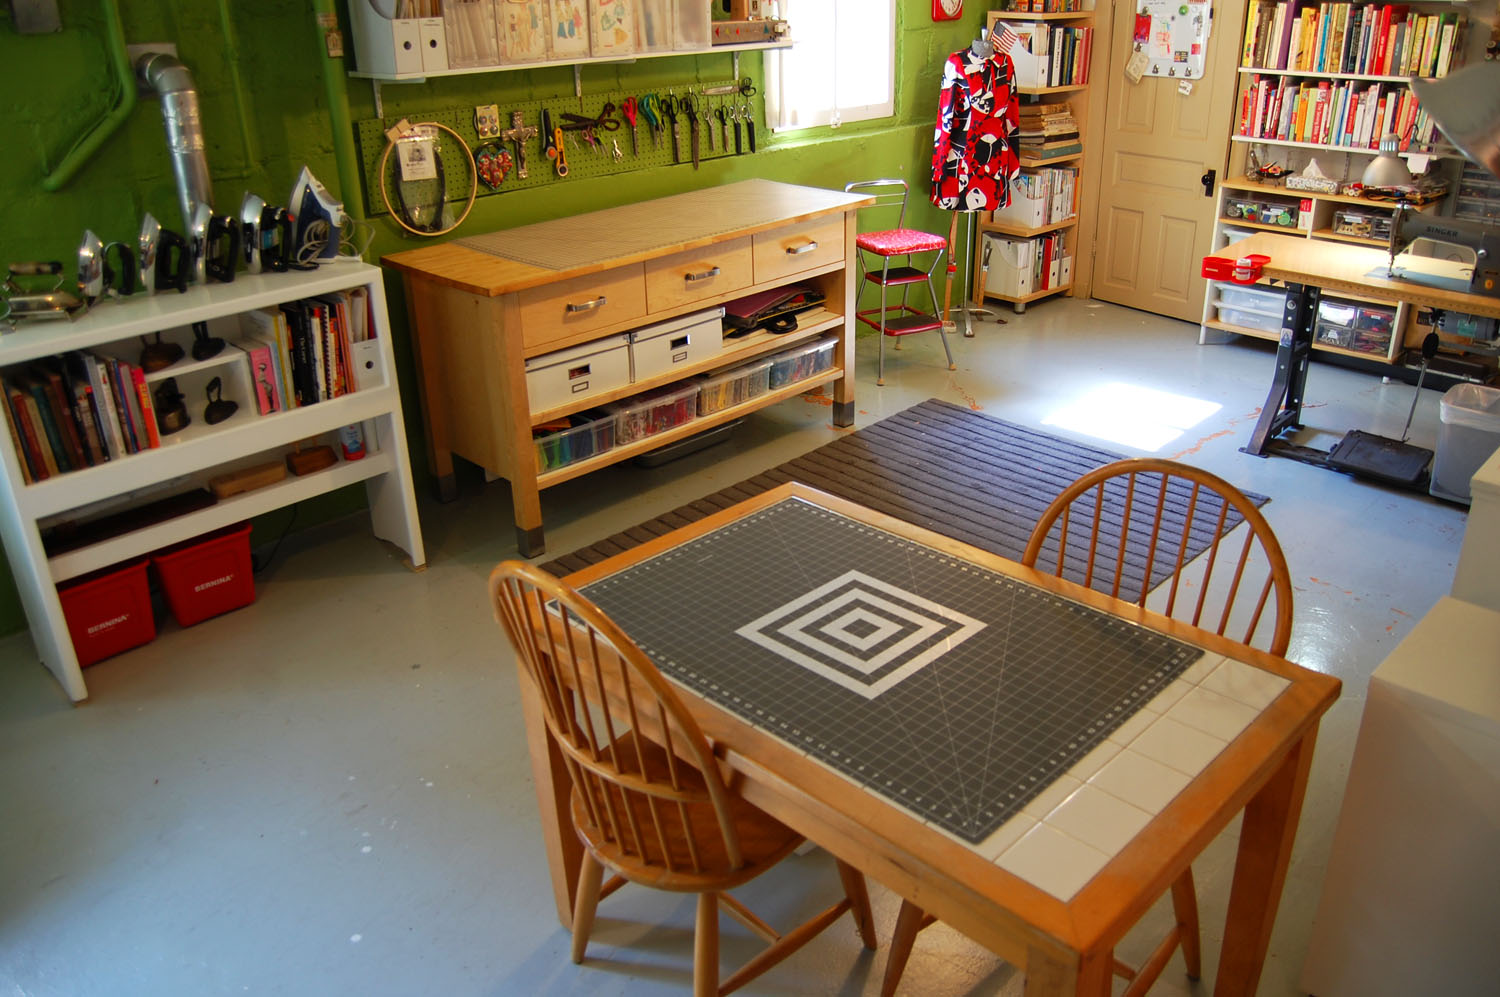 This Is The Sewing Room Now, All Clean As I Just Finished Cleaning Up After  Last Monthu0027s Water Incident   And Ready To Go!